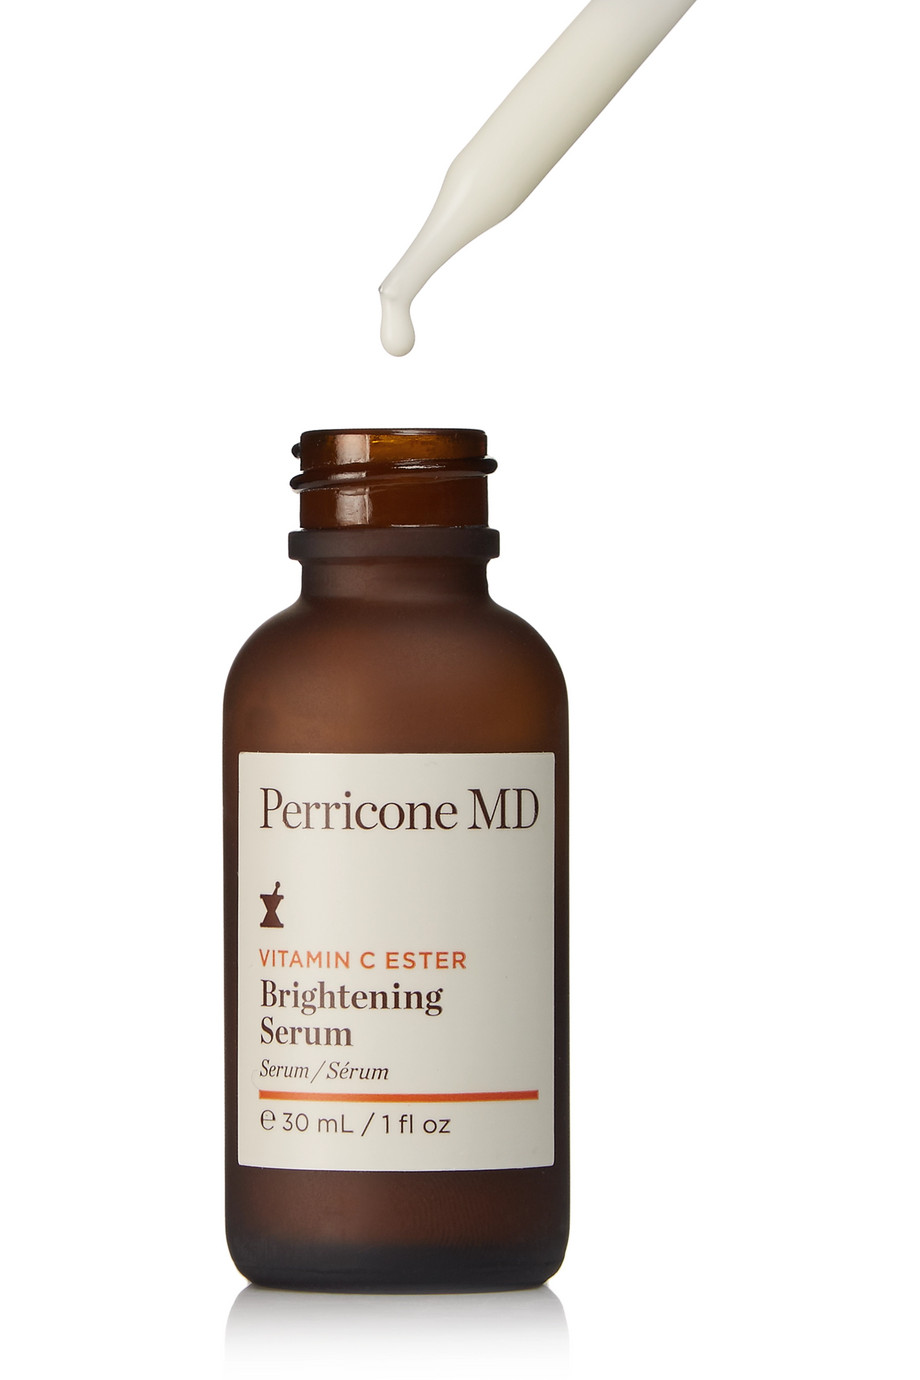 PERRICONE MD Vitamin C Ester Brightening Serum, 30ml